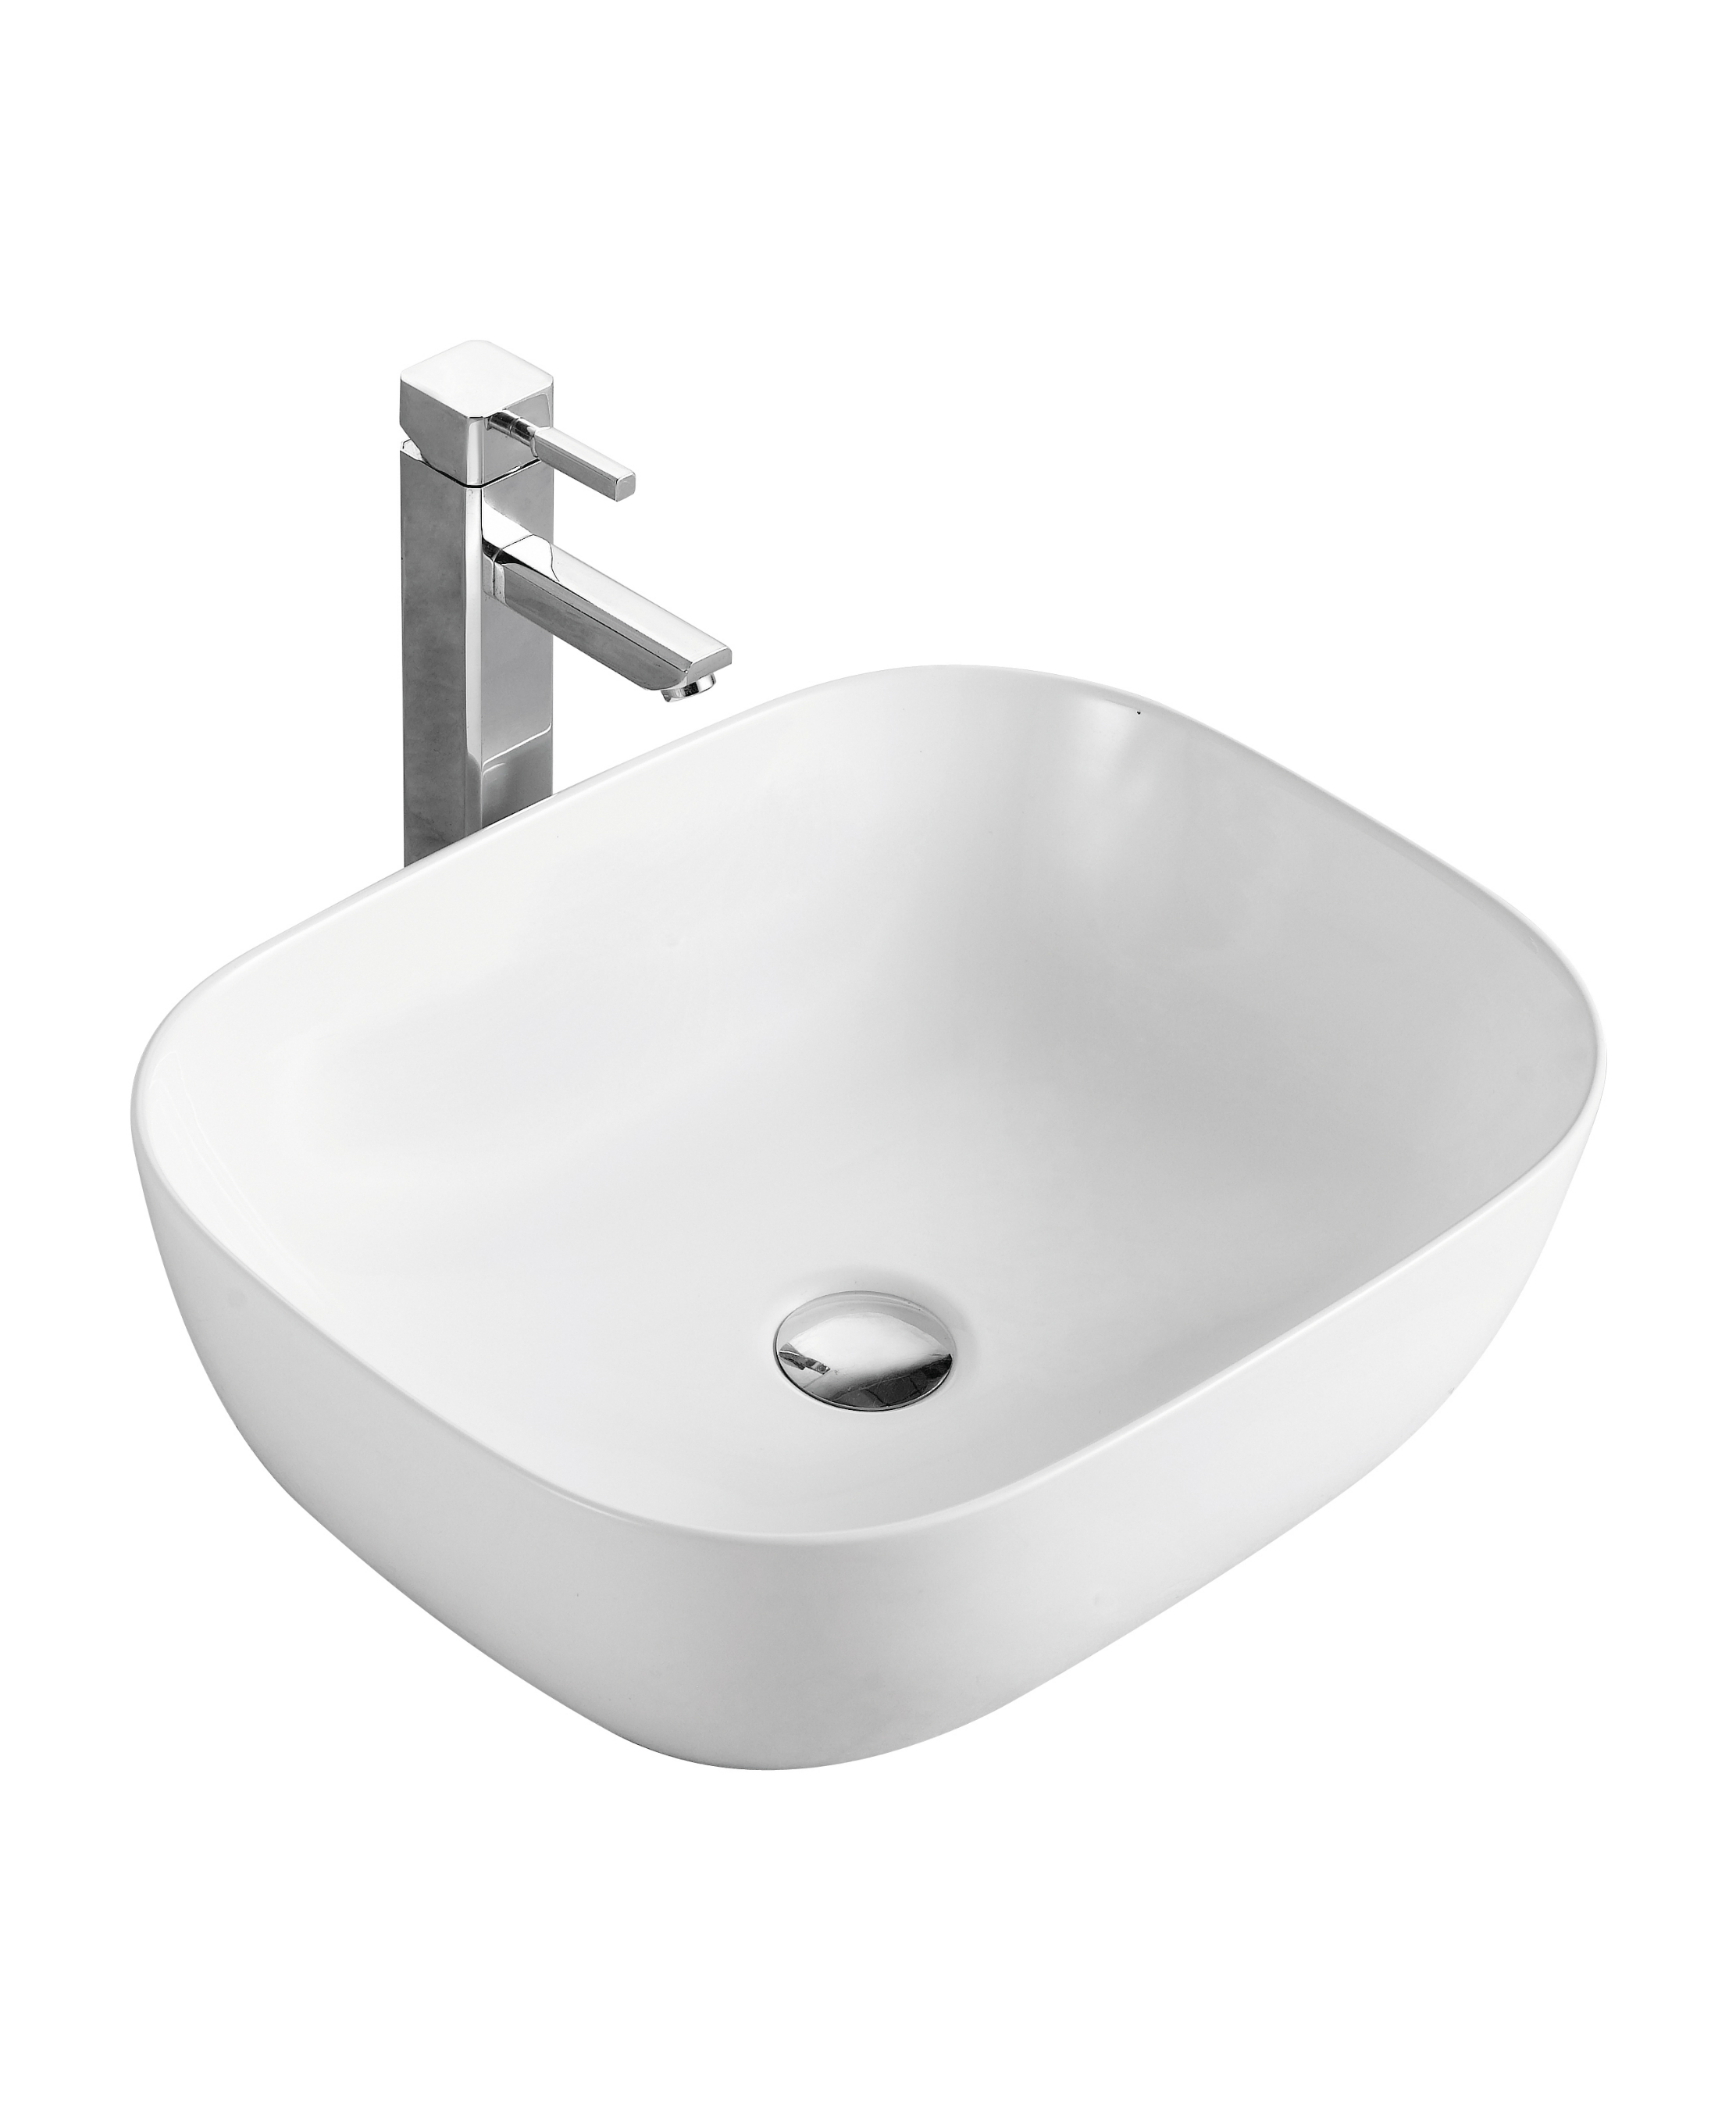 59ac1932edf9 Nora Soft Square Counter-top Basin 3 sizes - Ecco Living